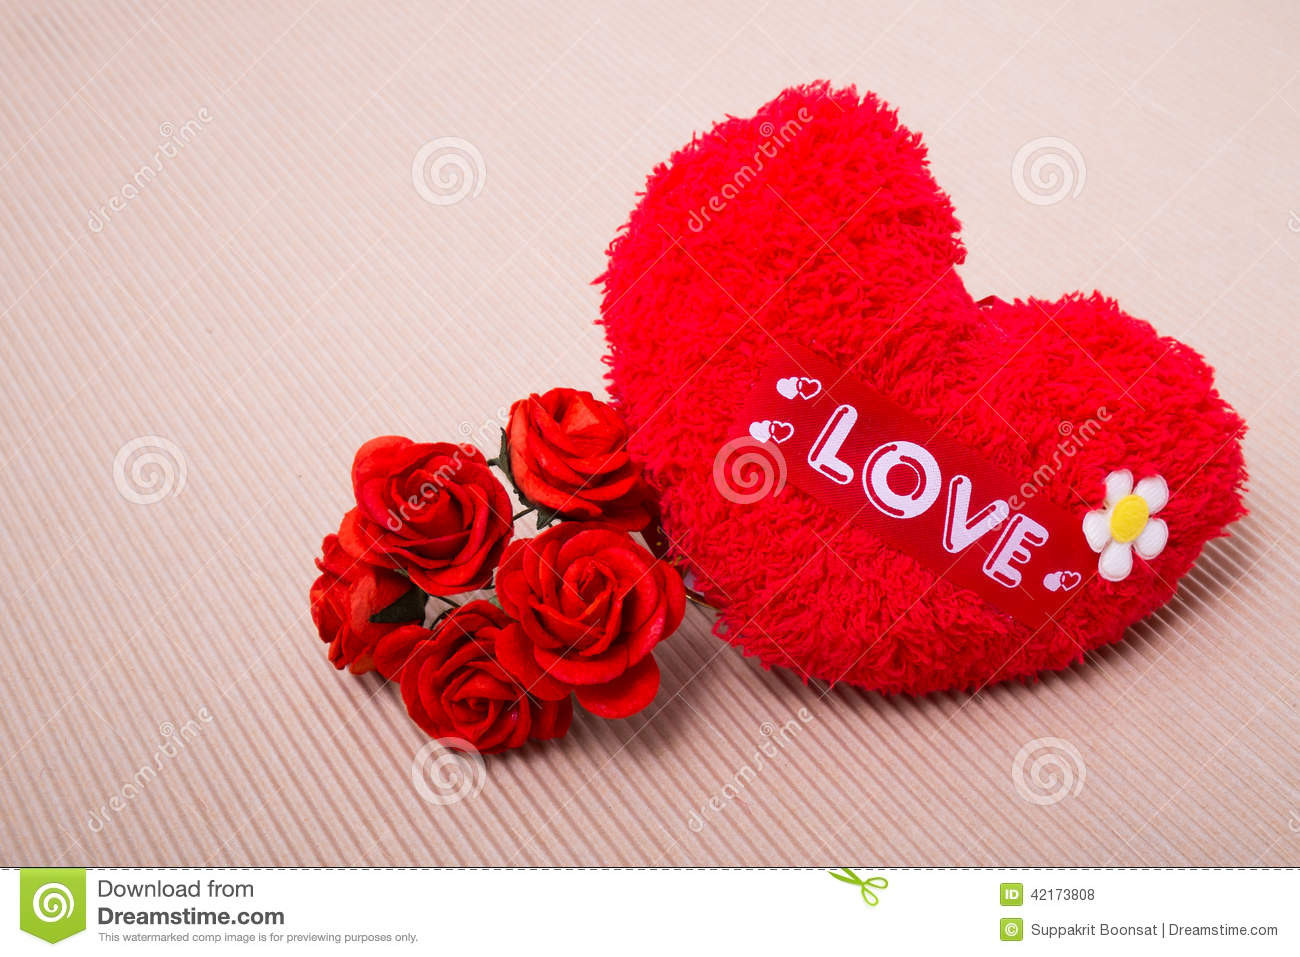 Red Heart with Love Lovely Red Heart with Love Word and Roses Royalty Free Stock Of Red Heart with Love Fresh Love Heart Impremedia